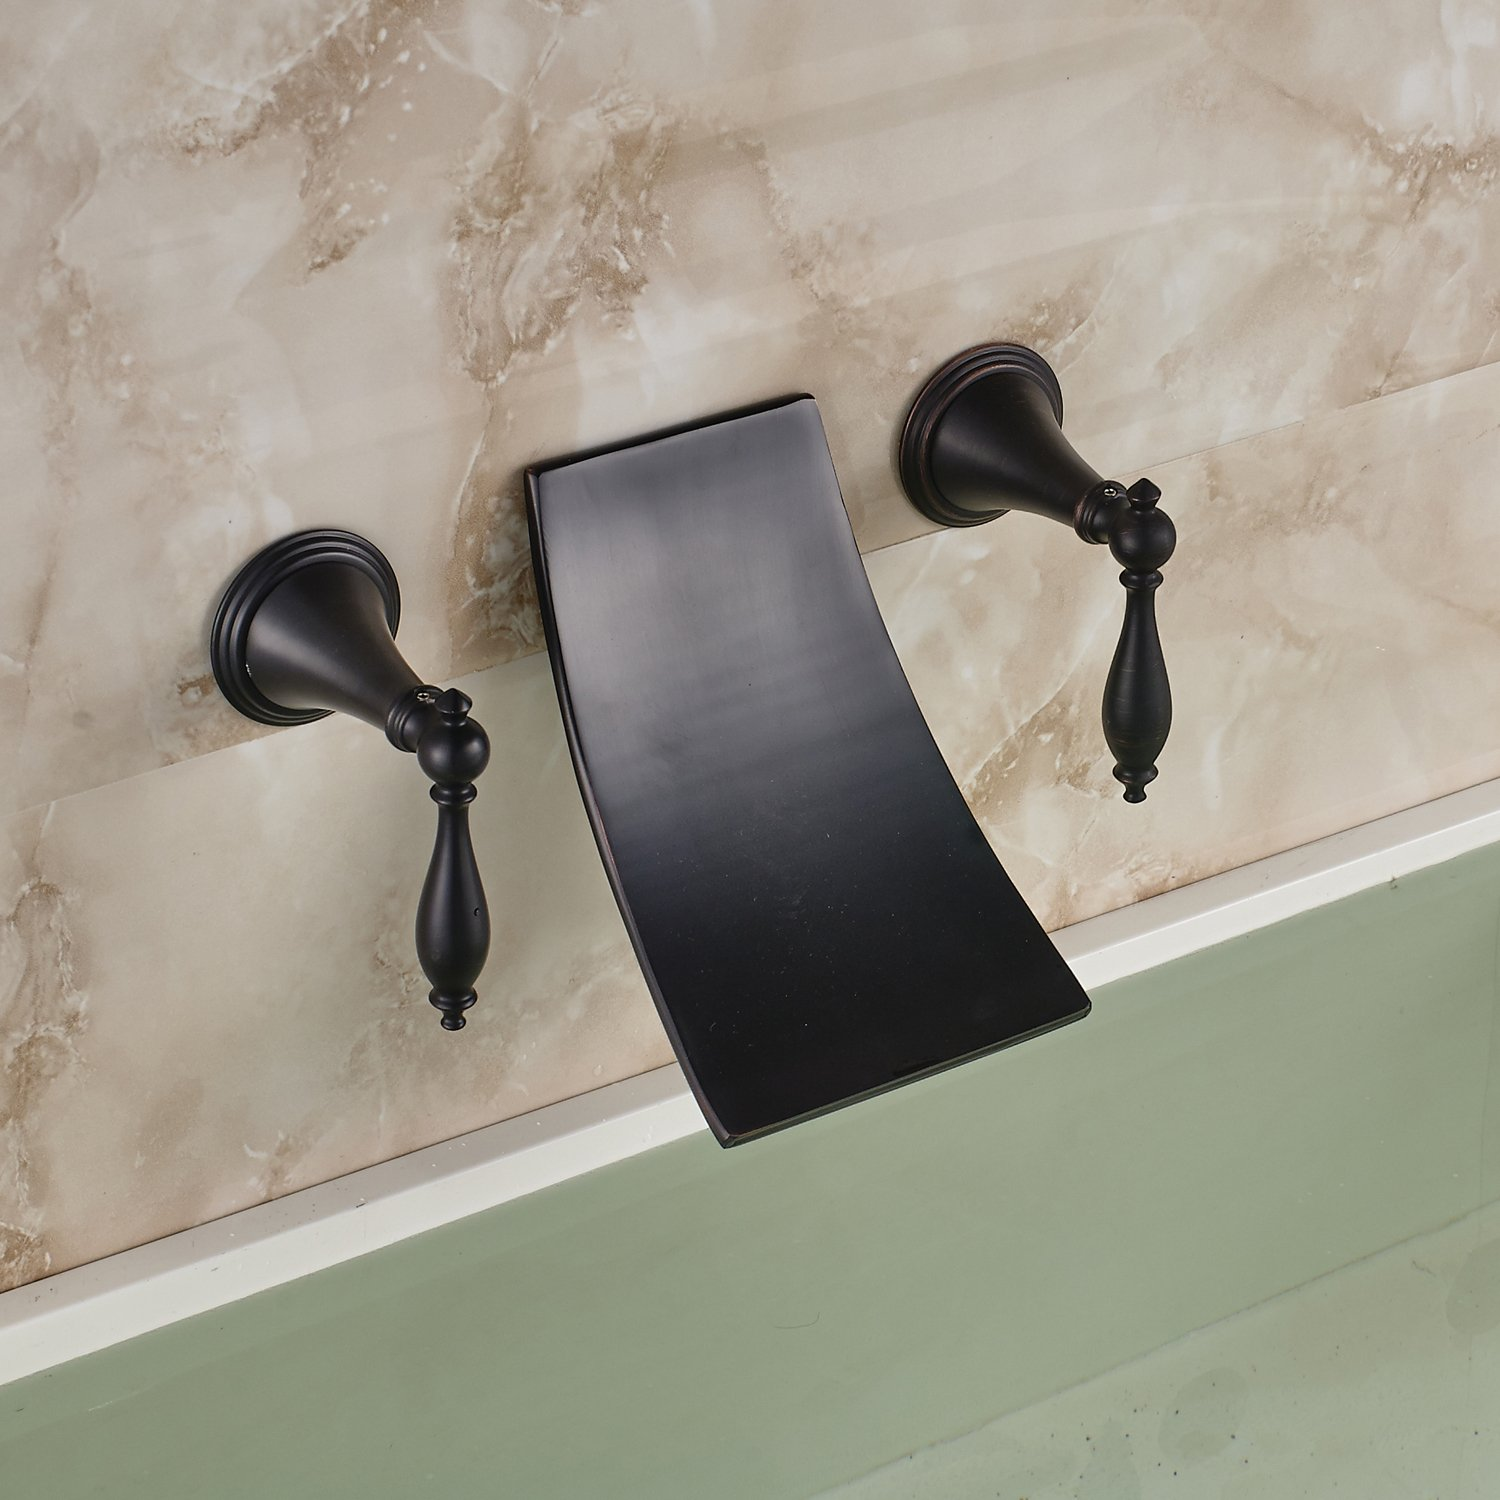 Oulantron Oil Rubbed Bronze Waterfall Spout Bathroom Sink Faucet ...